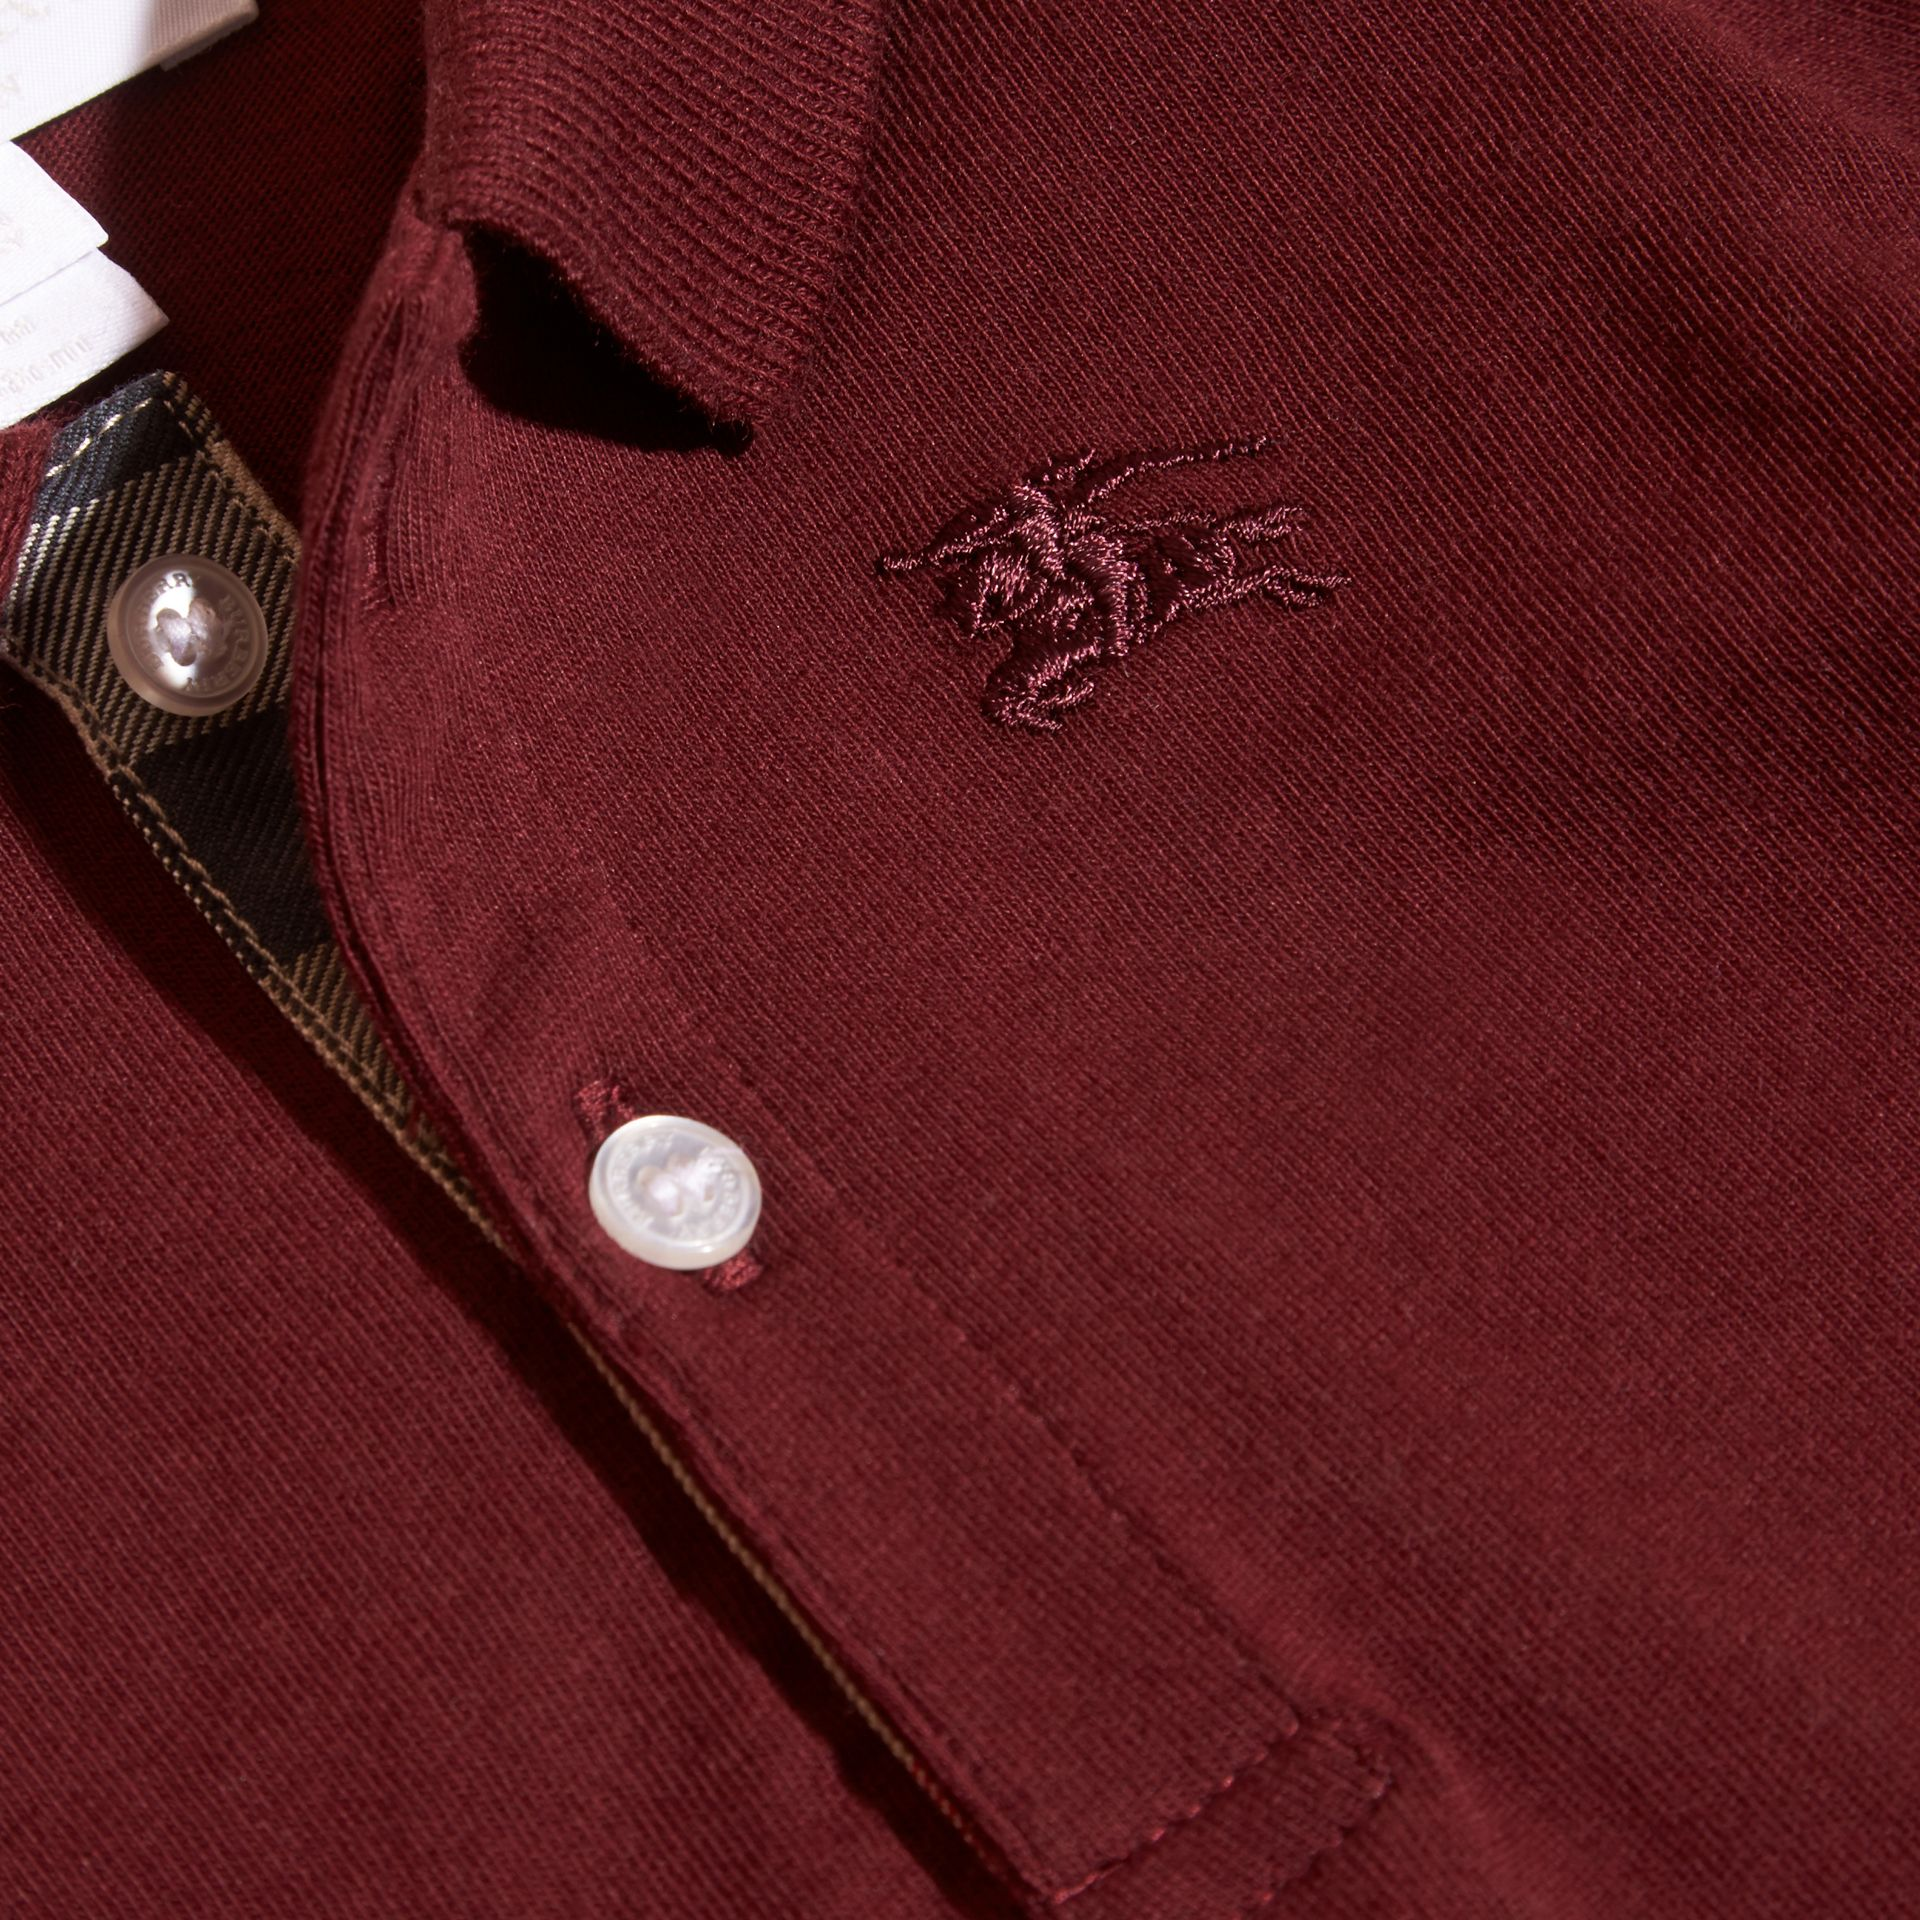 Burgundy red Check Trim Long-sleeved Cotton Polo Shirt Burgundy Red - gallery image 3